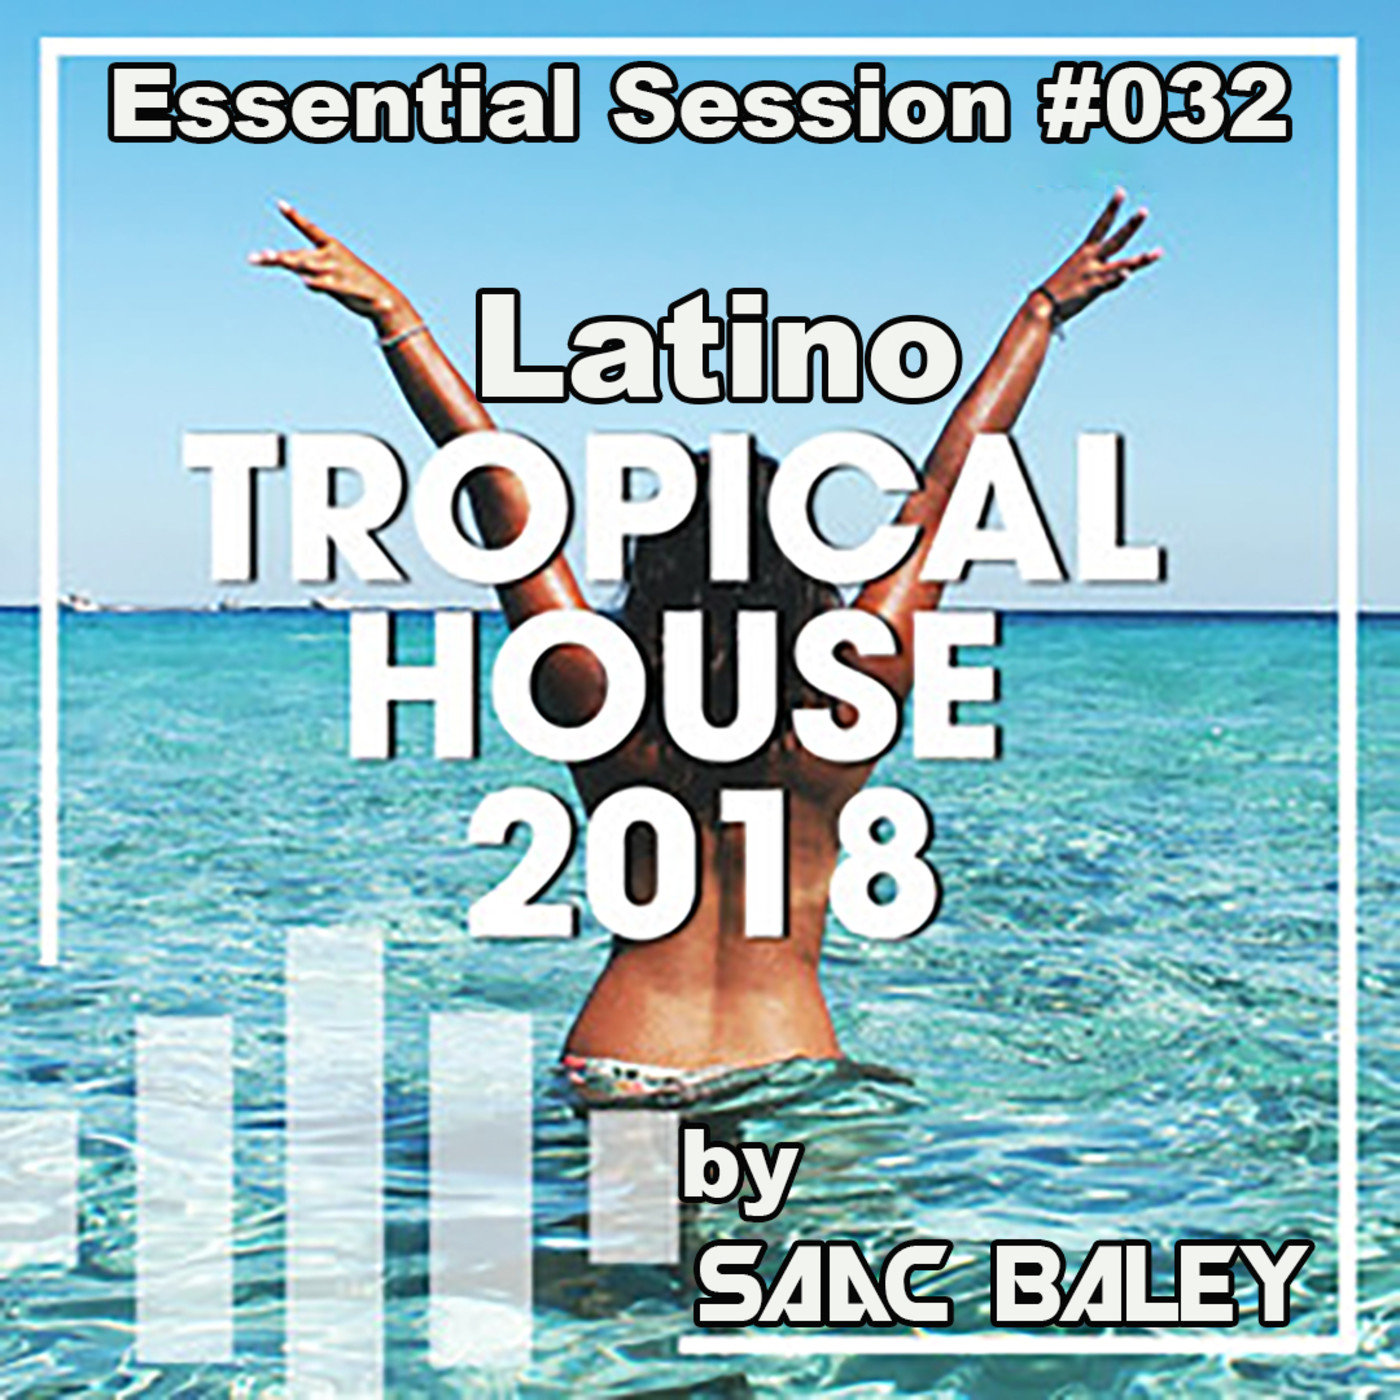 Session Latin Tropical House 2018 by Saac Baley